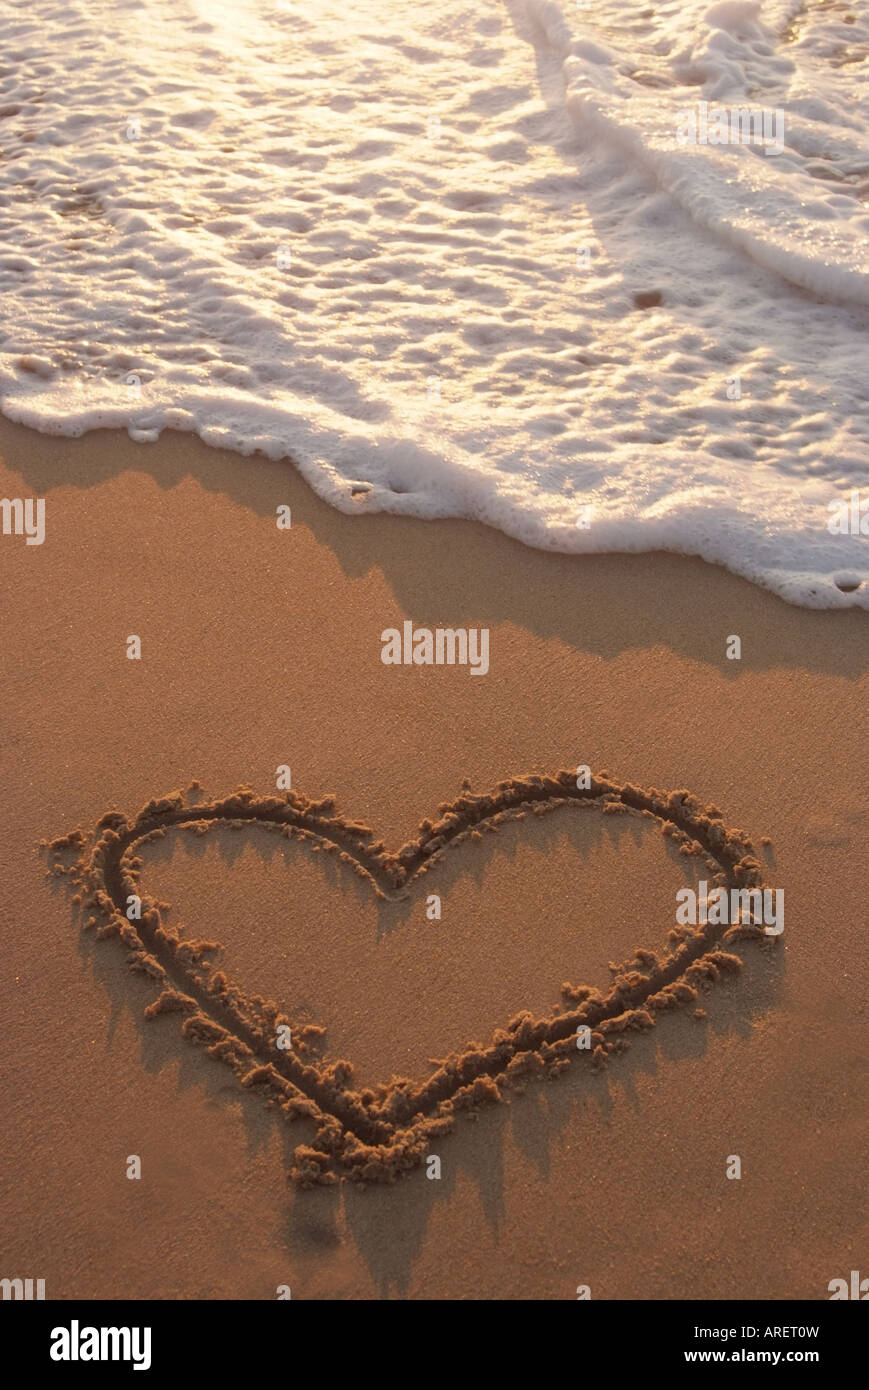 Heart drawn in sand Stock Photo